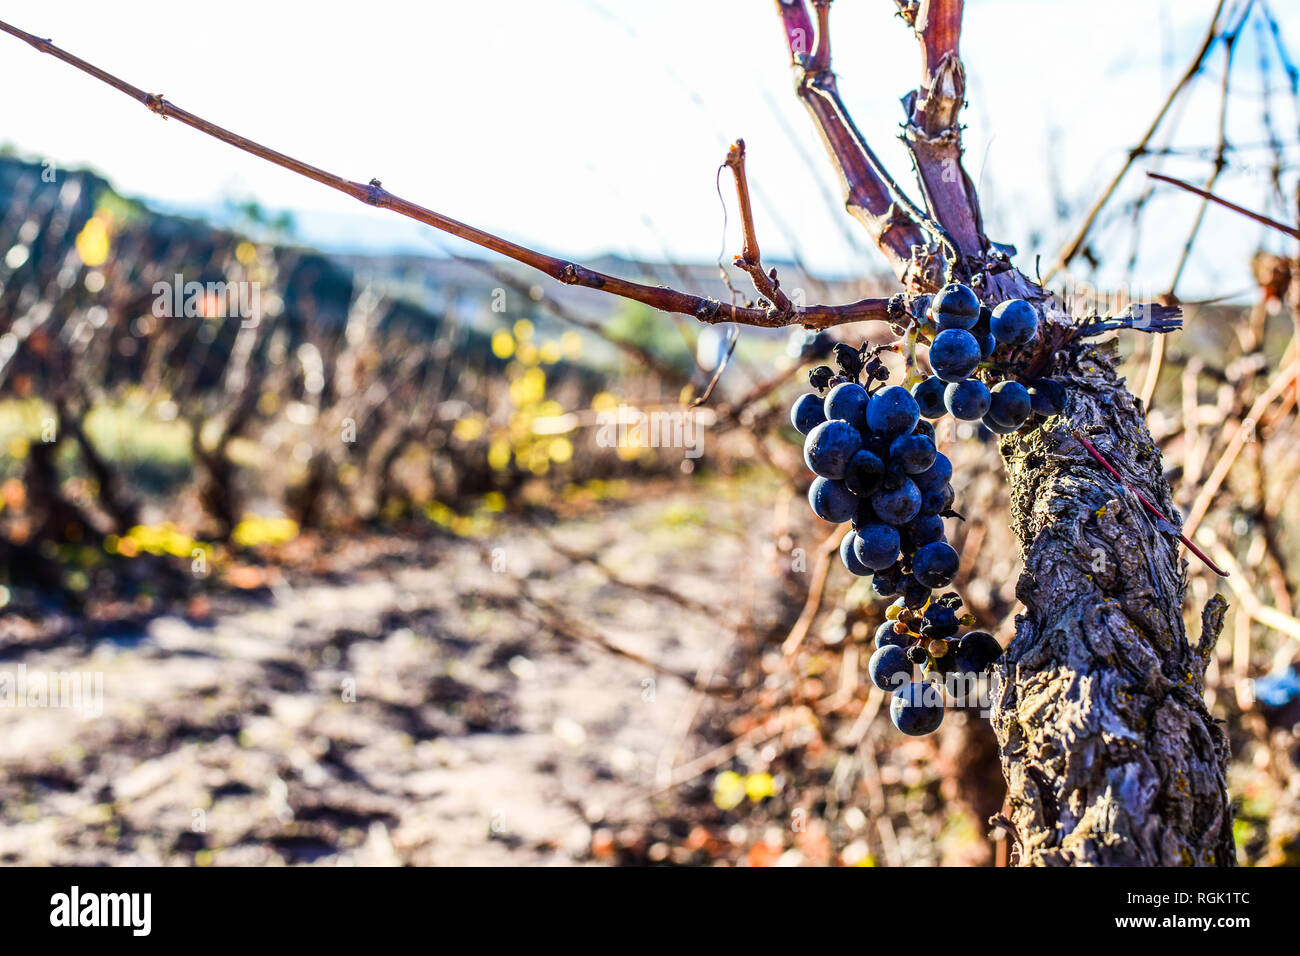 Grapevine Pruning Stock Photos Grapevine Pruning Stock Images